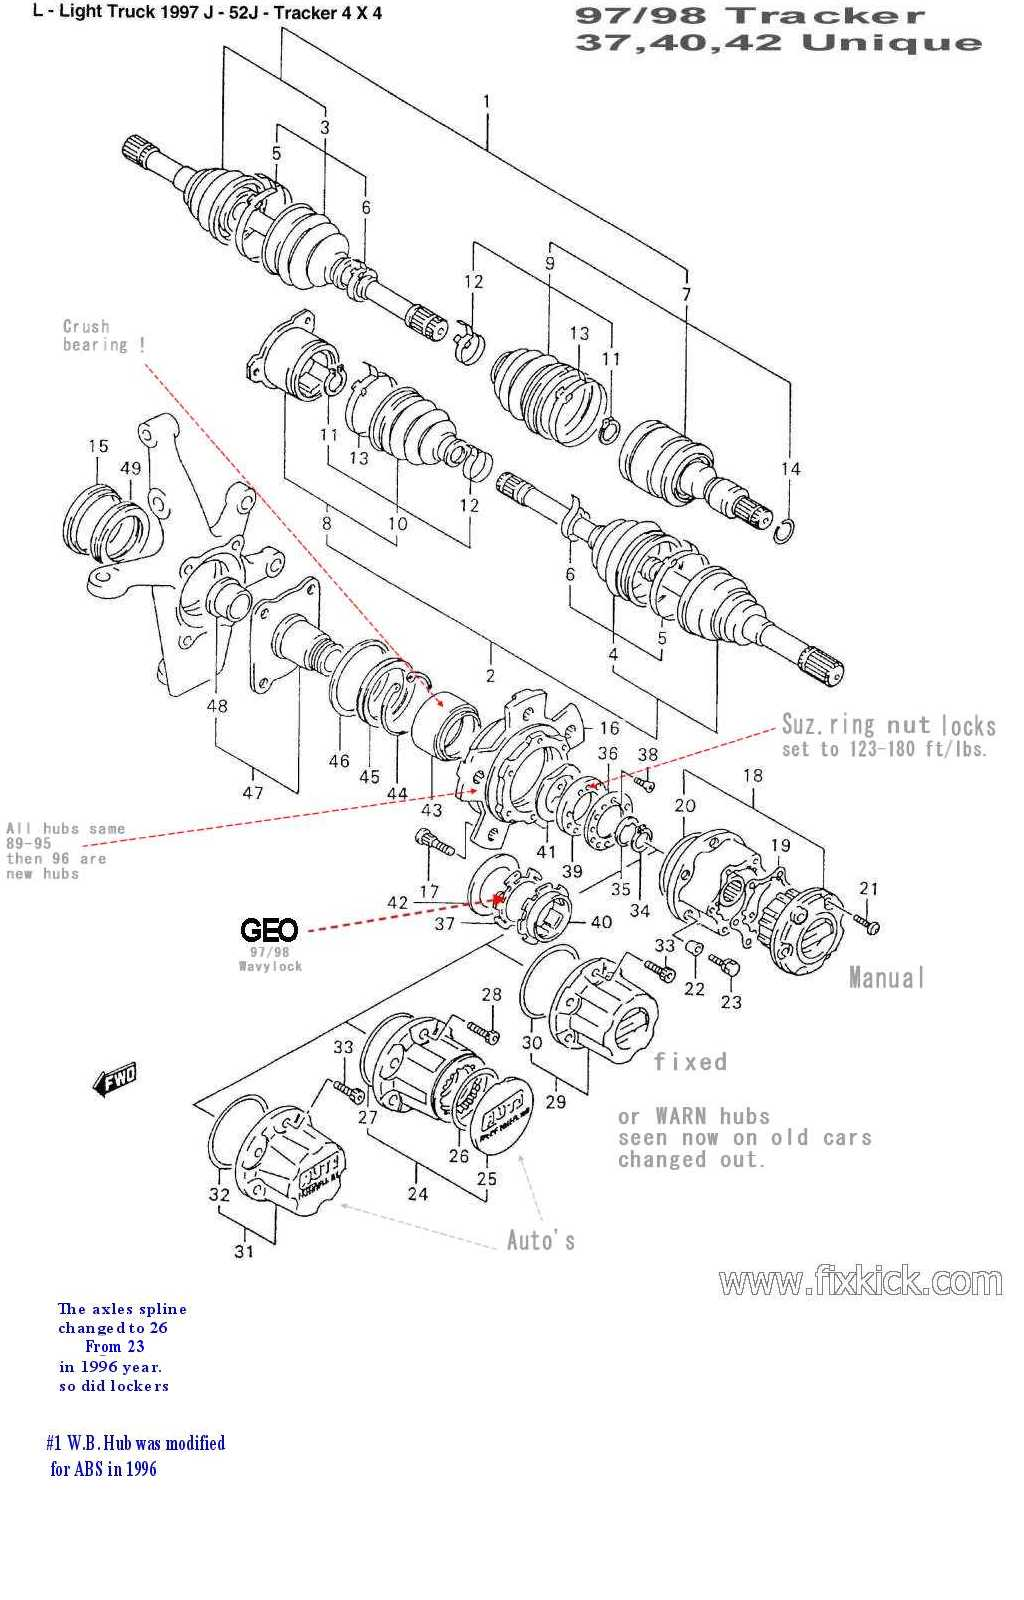 Repair Diagrams For 2003 Chevrolet Silverado 2500 Engine further 2000 Ford Mustang Head Gasket further Fuse Box With Cover Art furthermore Geo Metro Ignition Switch Wiring Diagram additionally 1991 Geo Prizm Engine Diagram. on geo tracker parts car